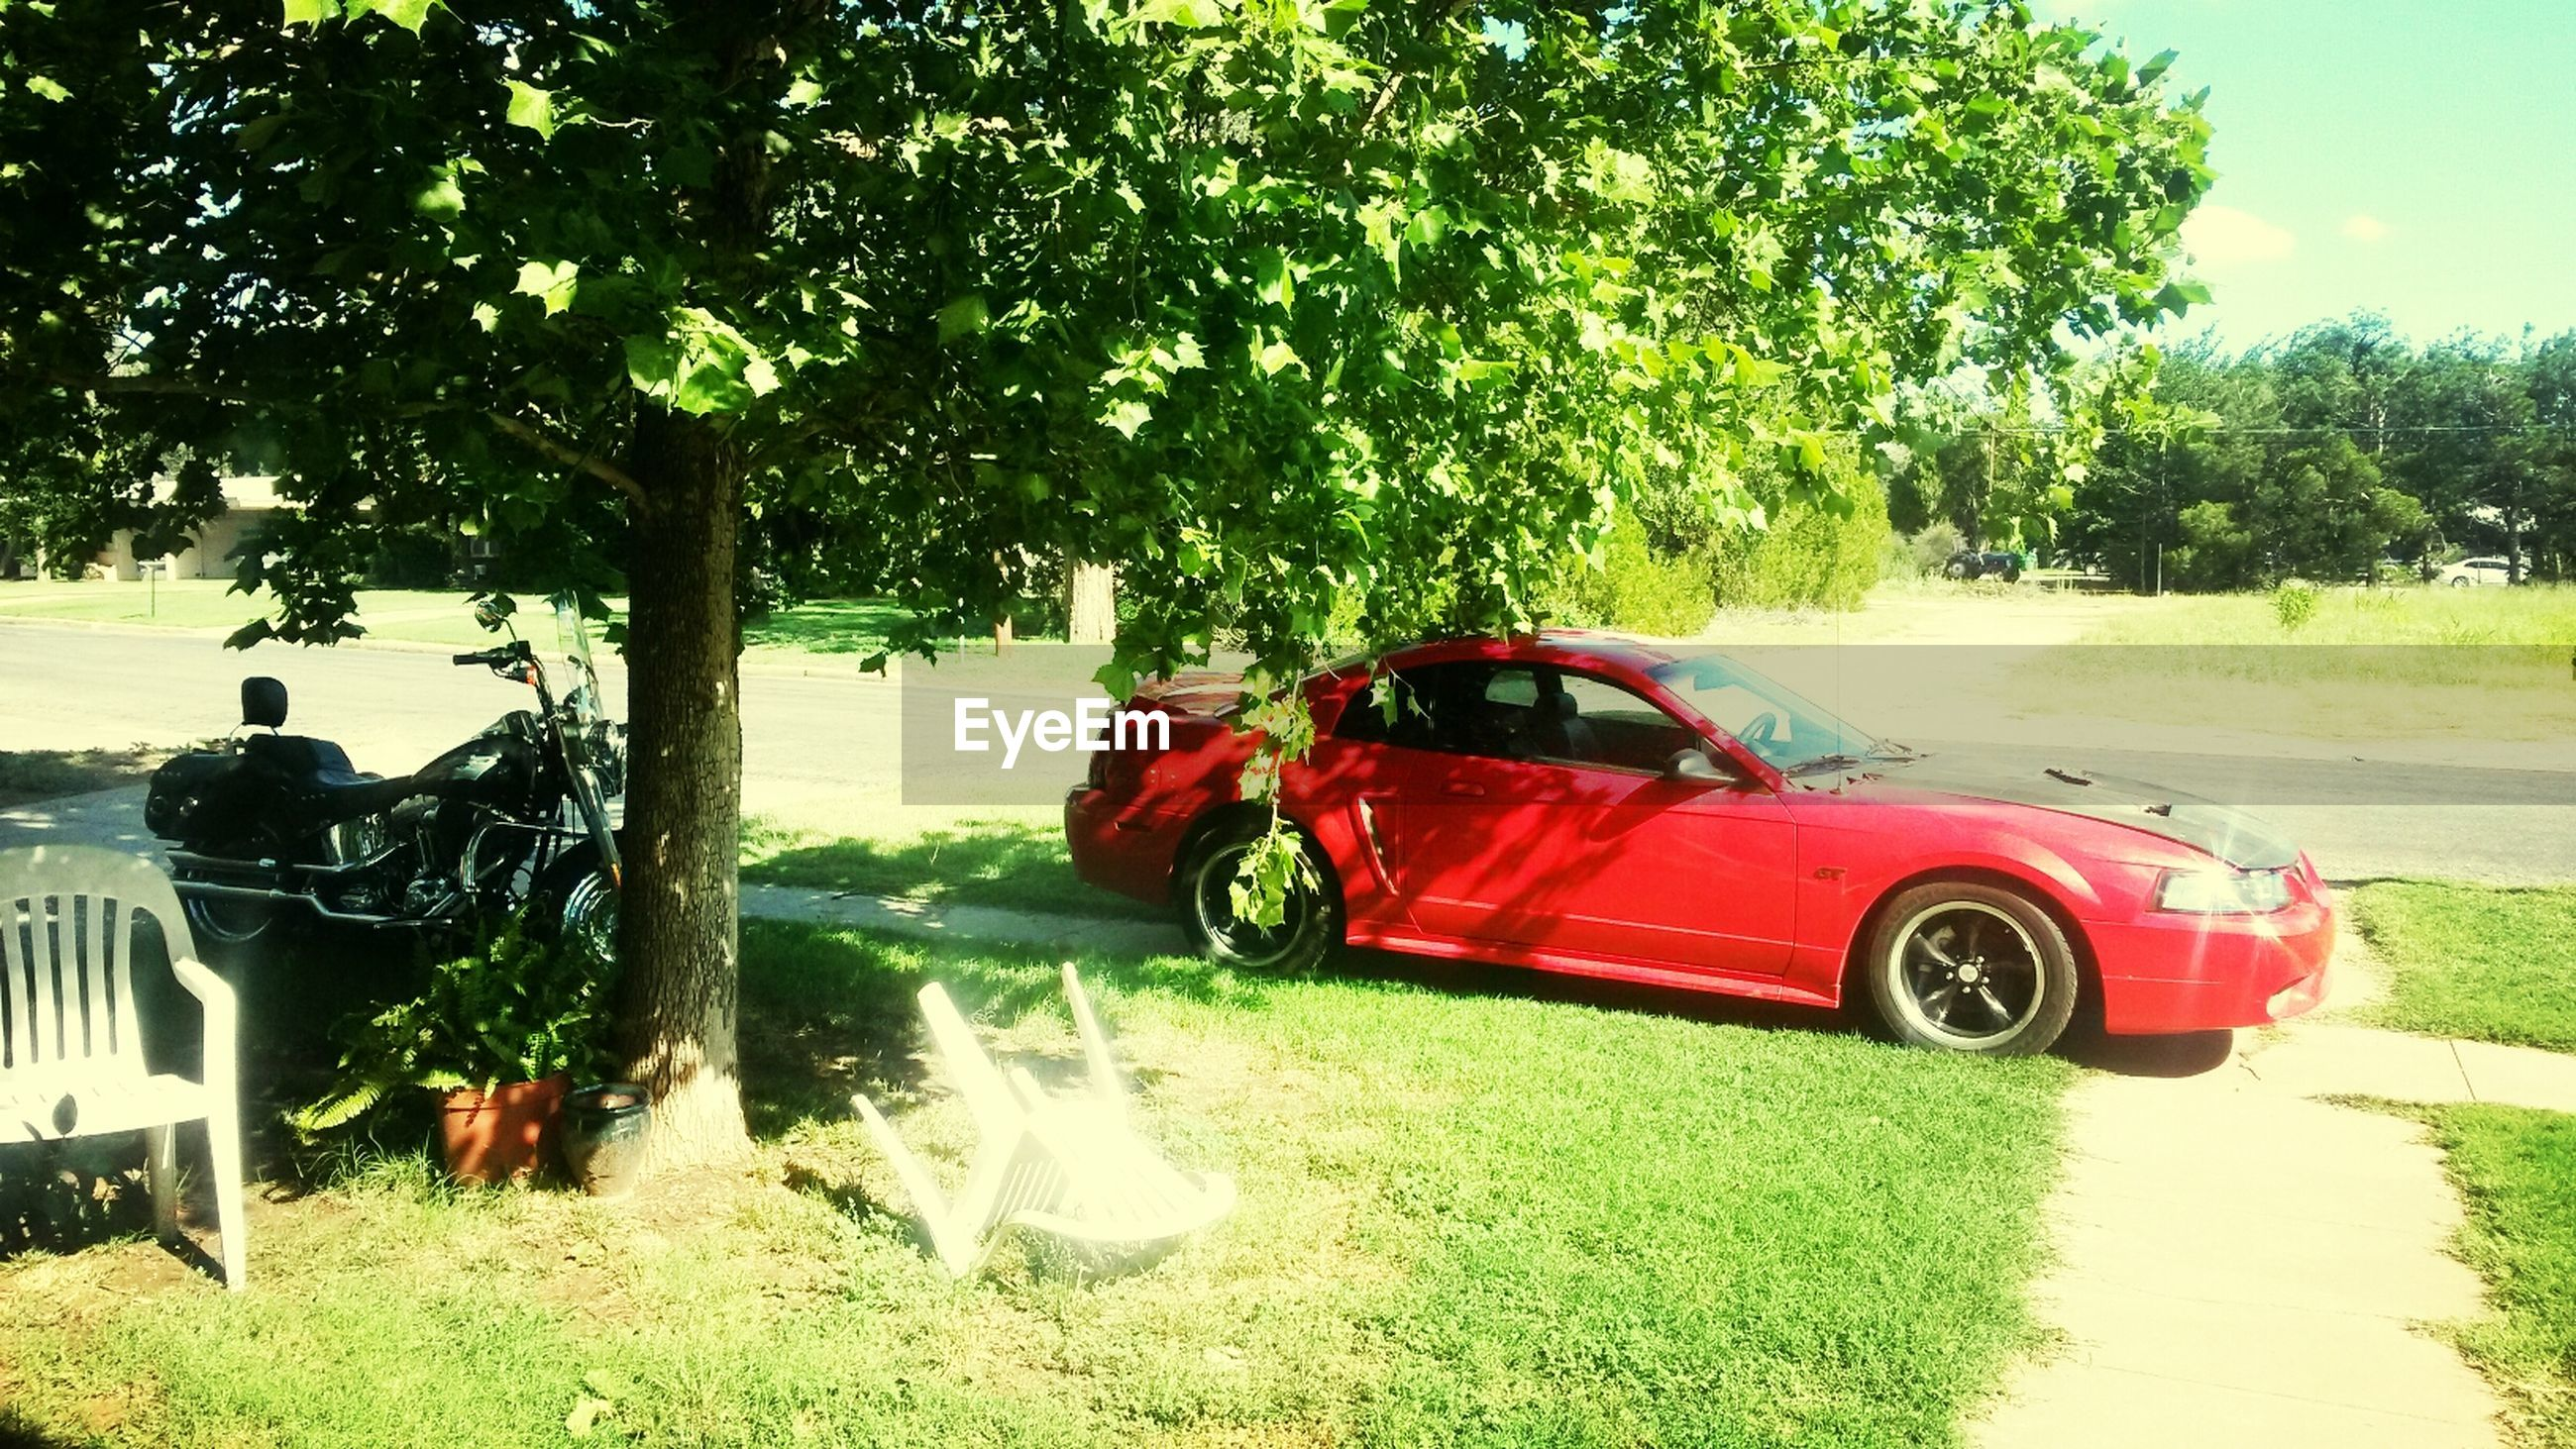 tree, land vehicle, car, transportation, grass, mode of transport, green color, field, growth, sky, day, road, outdoors, street, nature, travel, stationary, vehicle, sunlight, red